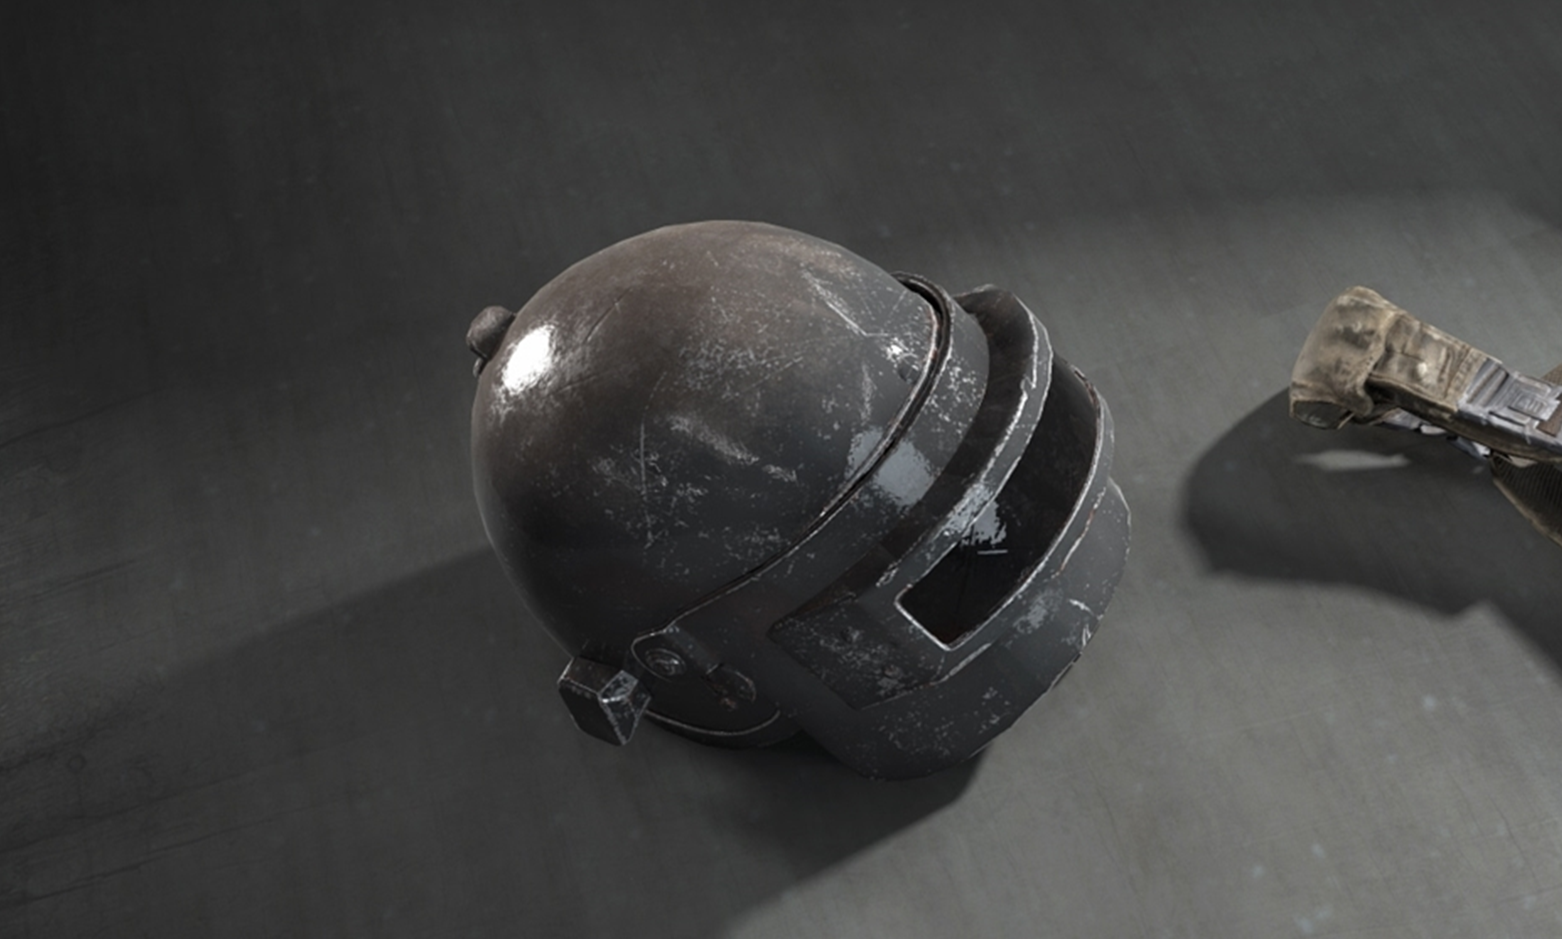 PUBG's Best Helmets Are Going To Get Harder To Find